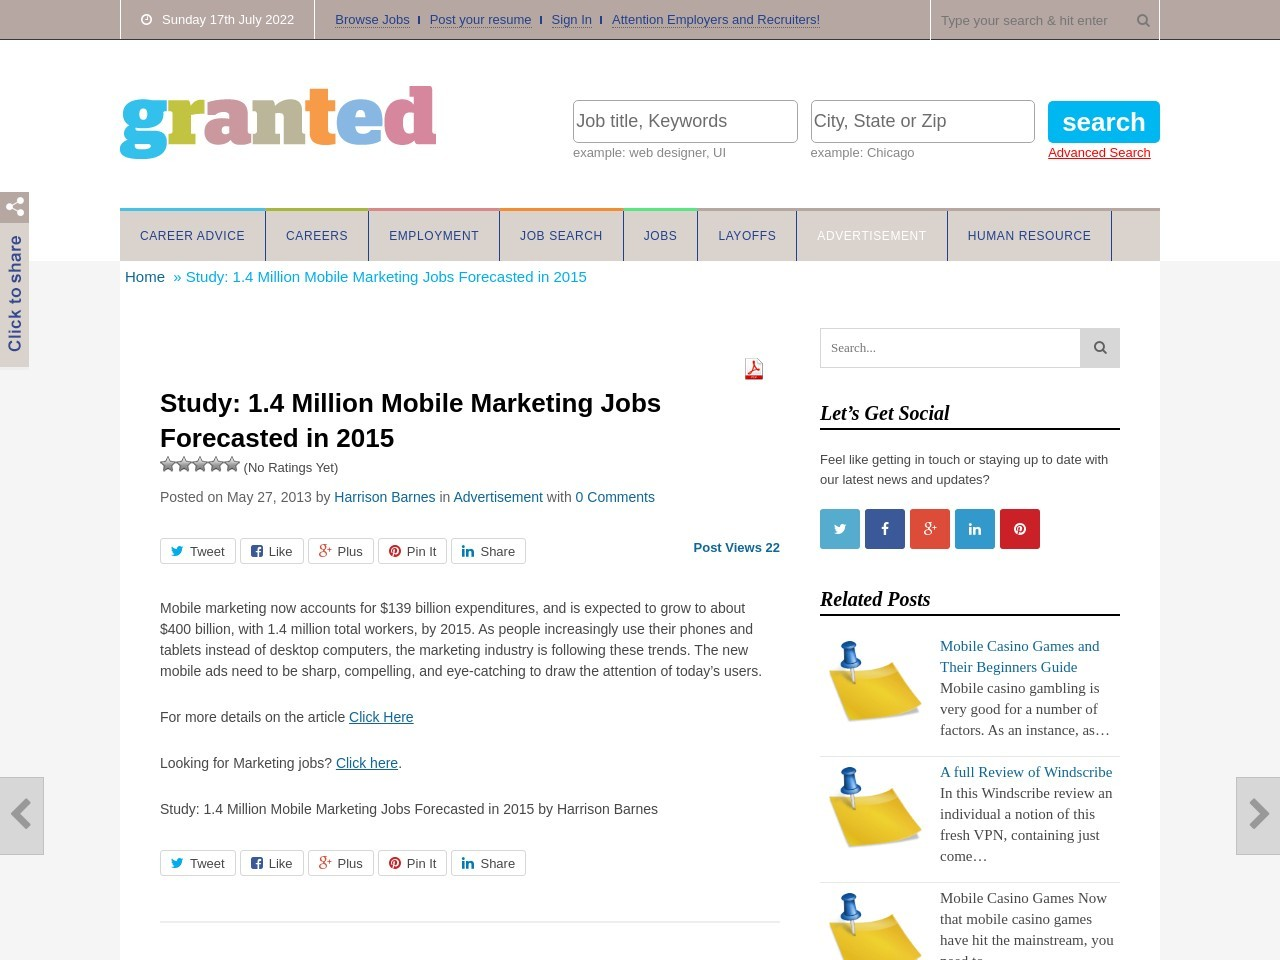 Study: 1.4 Million Mobile Marketing Jobs Forecasted in 2015